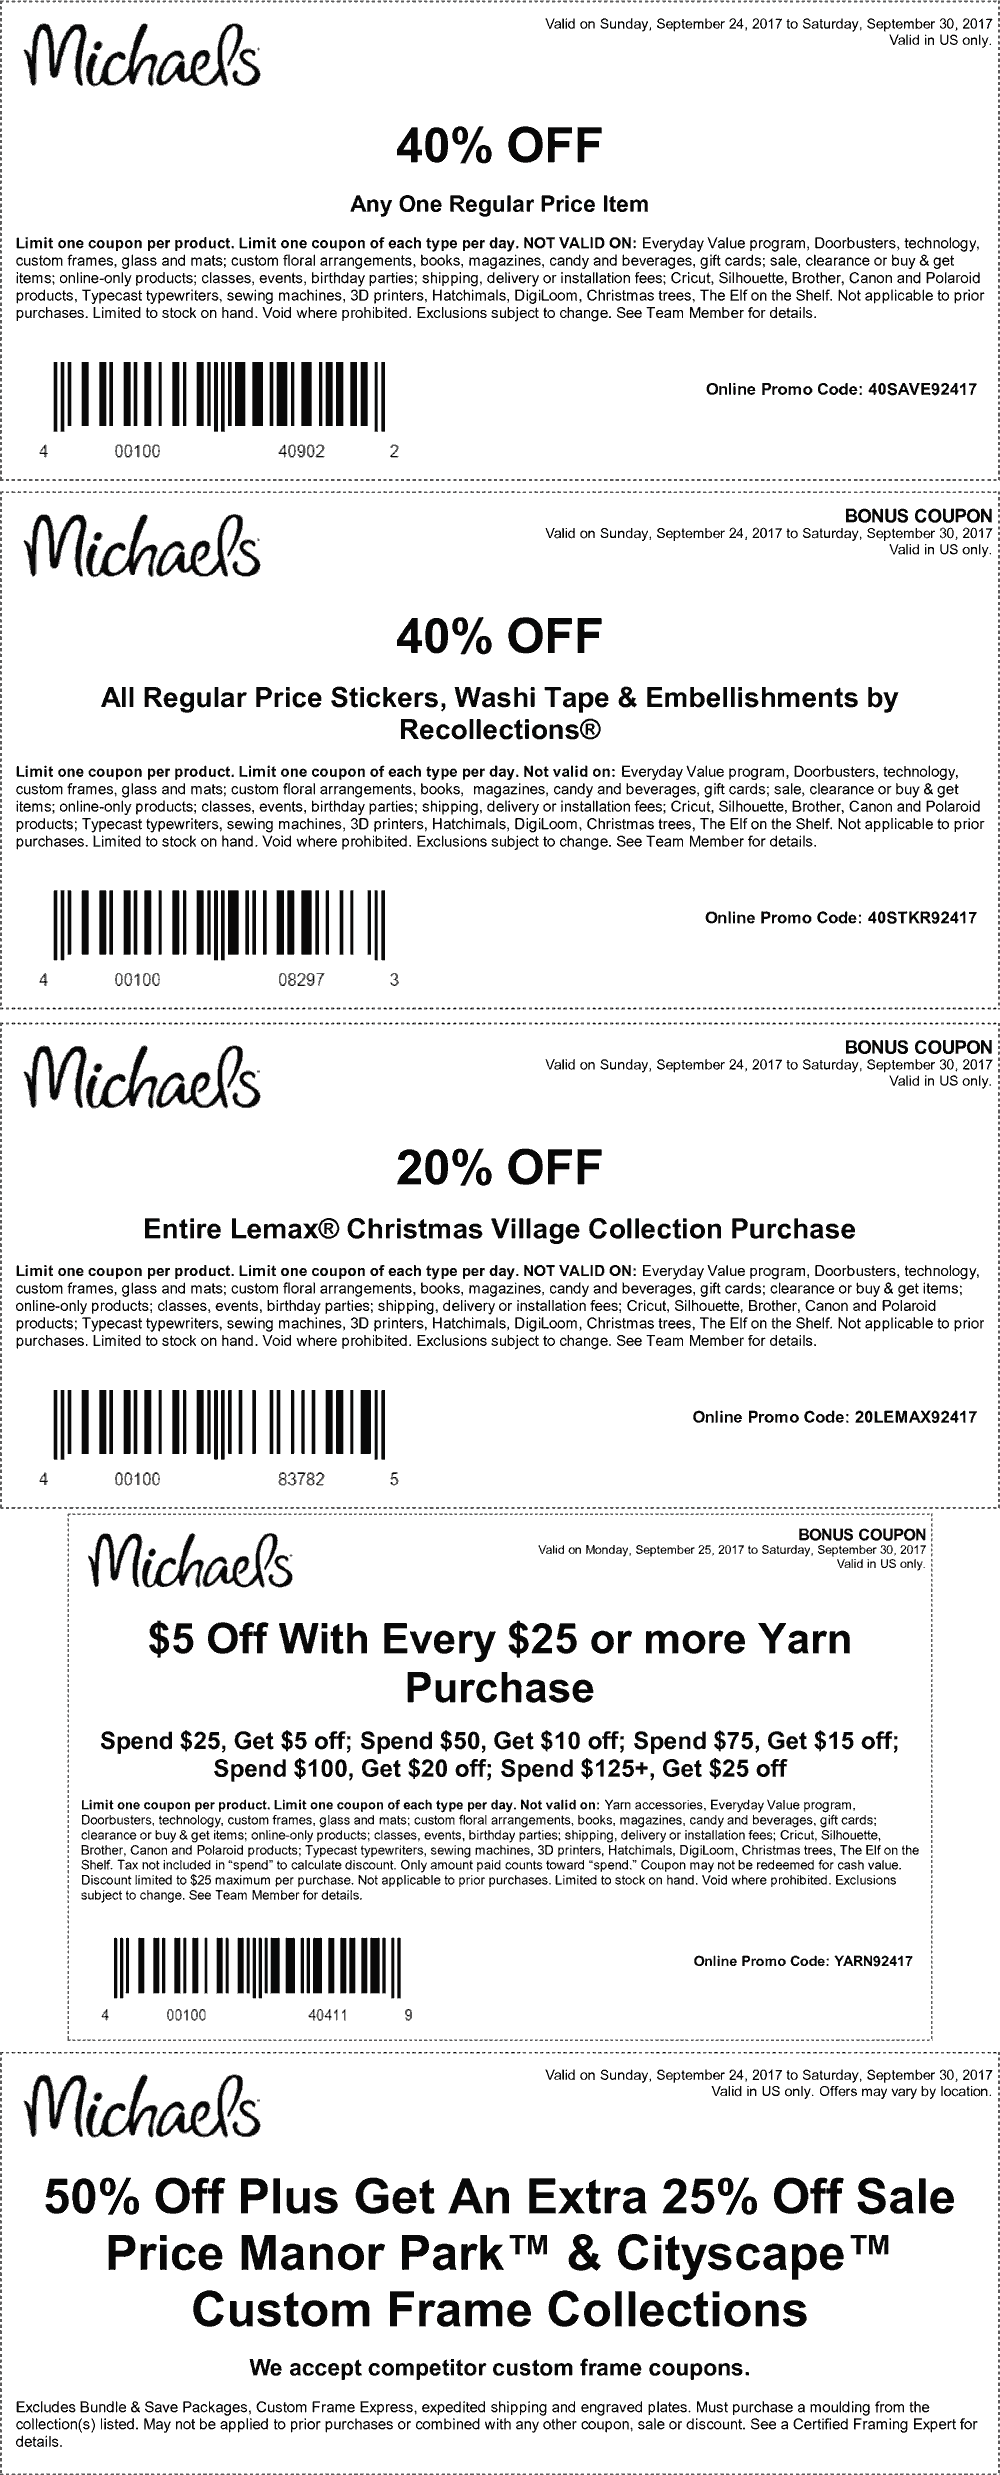 Michaels.com Promo Coupon 40% off a single item & more at Michaels, or online via promo code 40SAVE2417